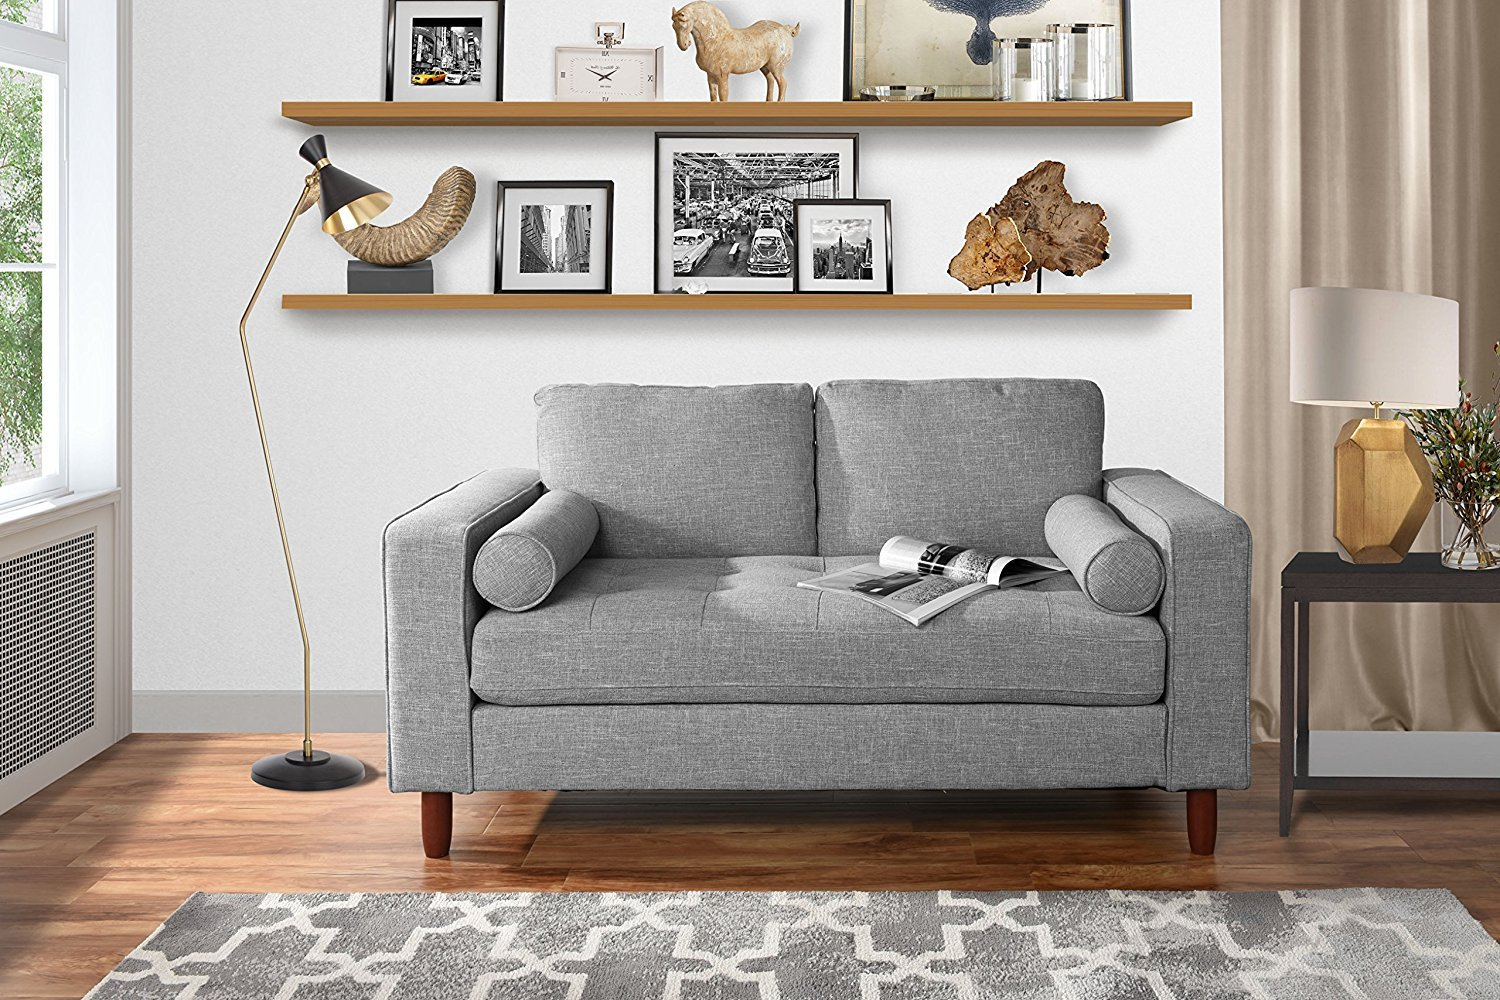 Modern Sofa Loveseat with Tufted Linen Fabric Living Room Couch (Light Grey) by Sofamania